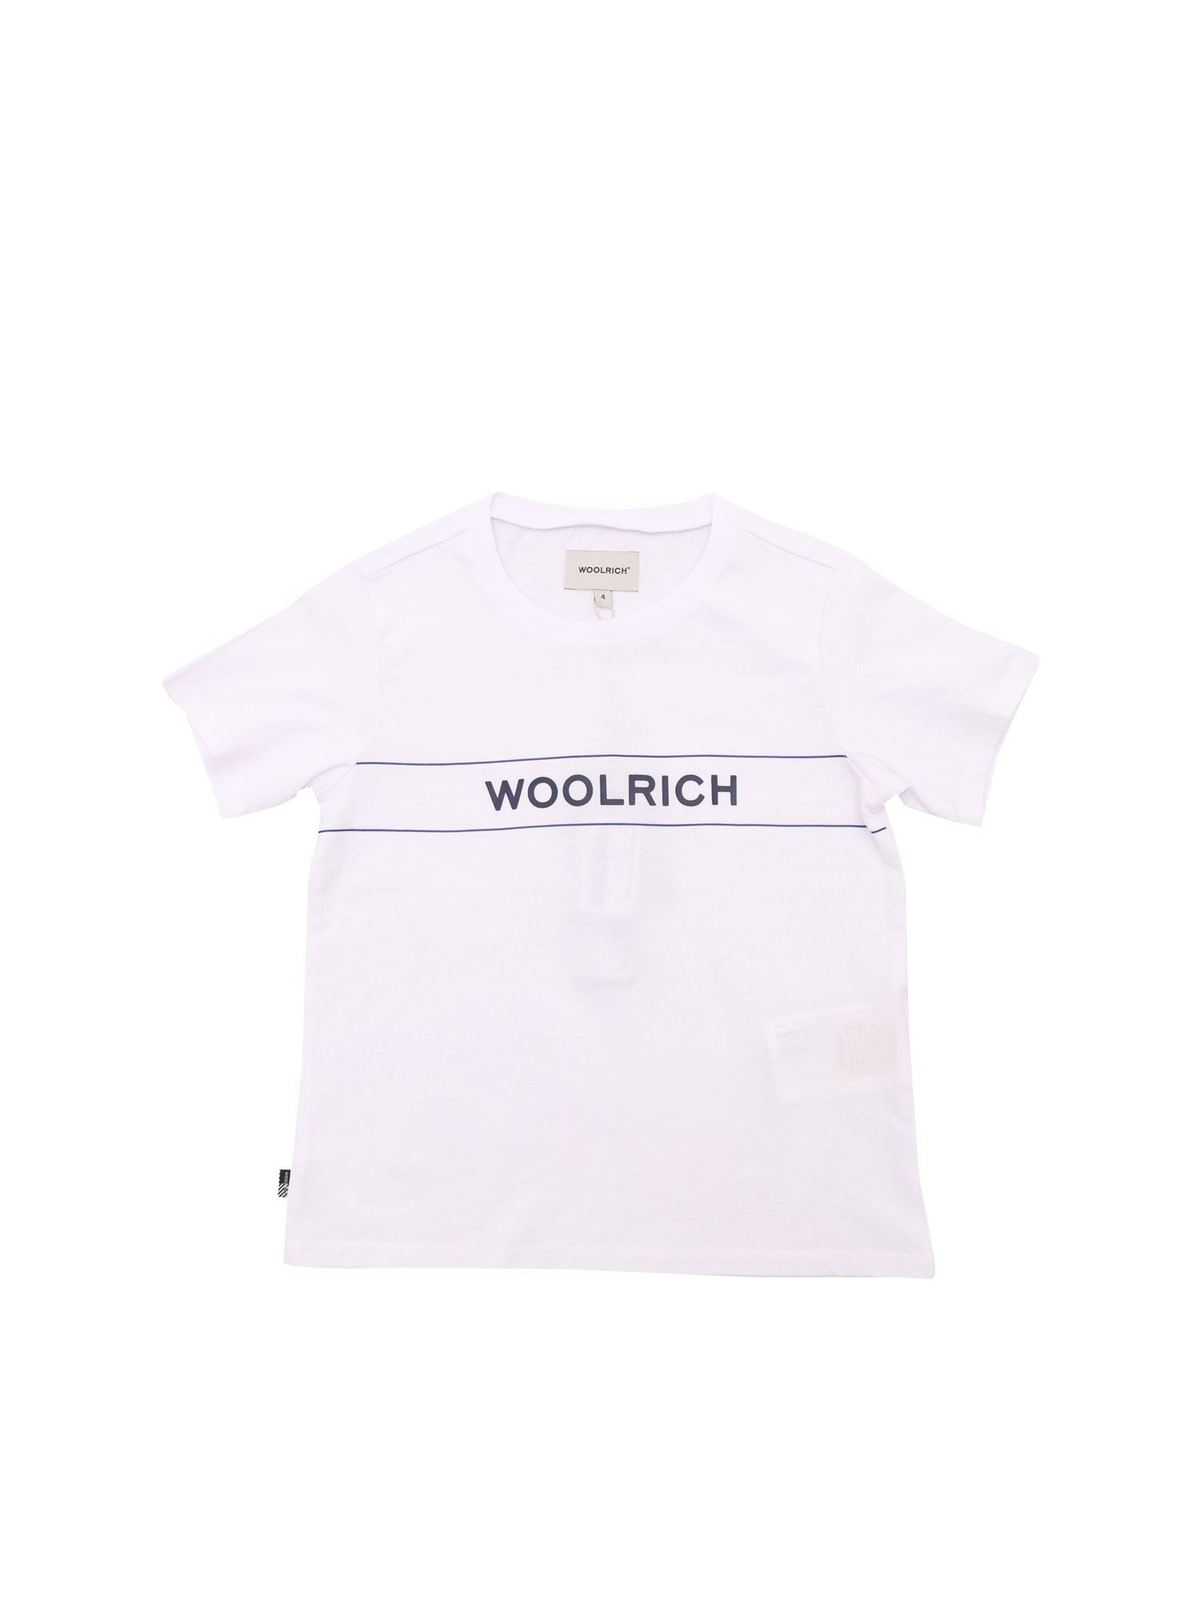 Woolrich Cottons WOOLRICH T-SHIRT IN WHITE